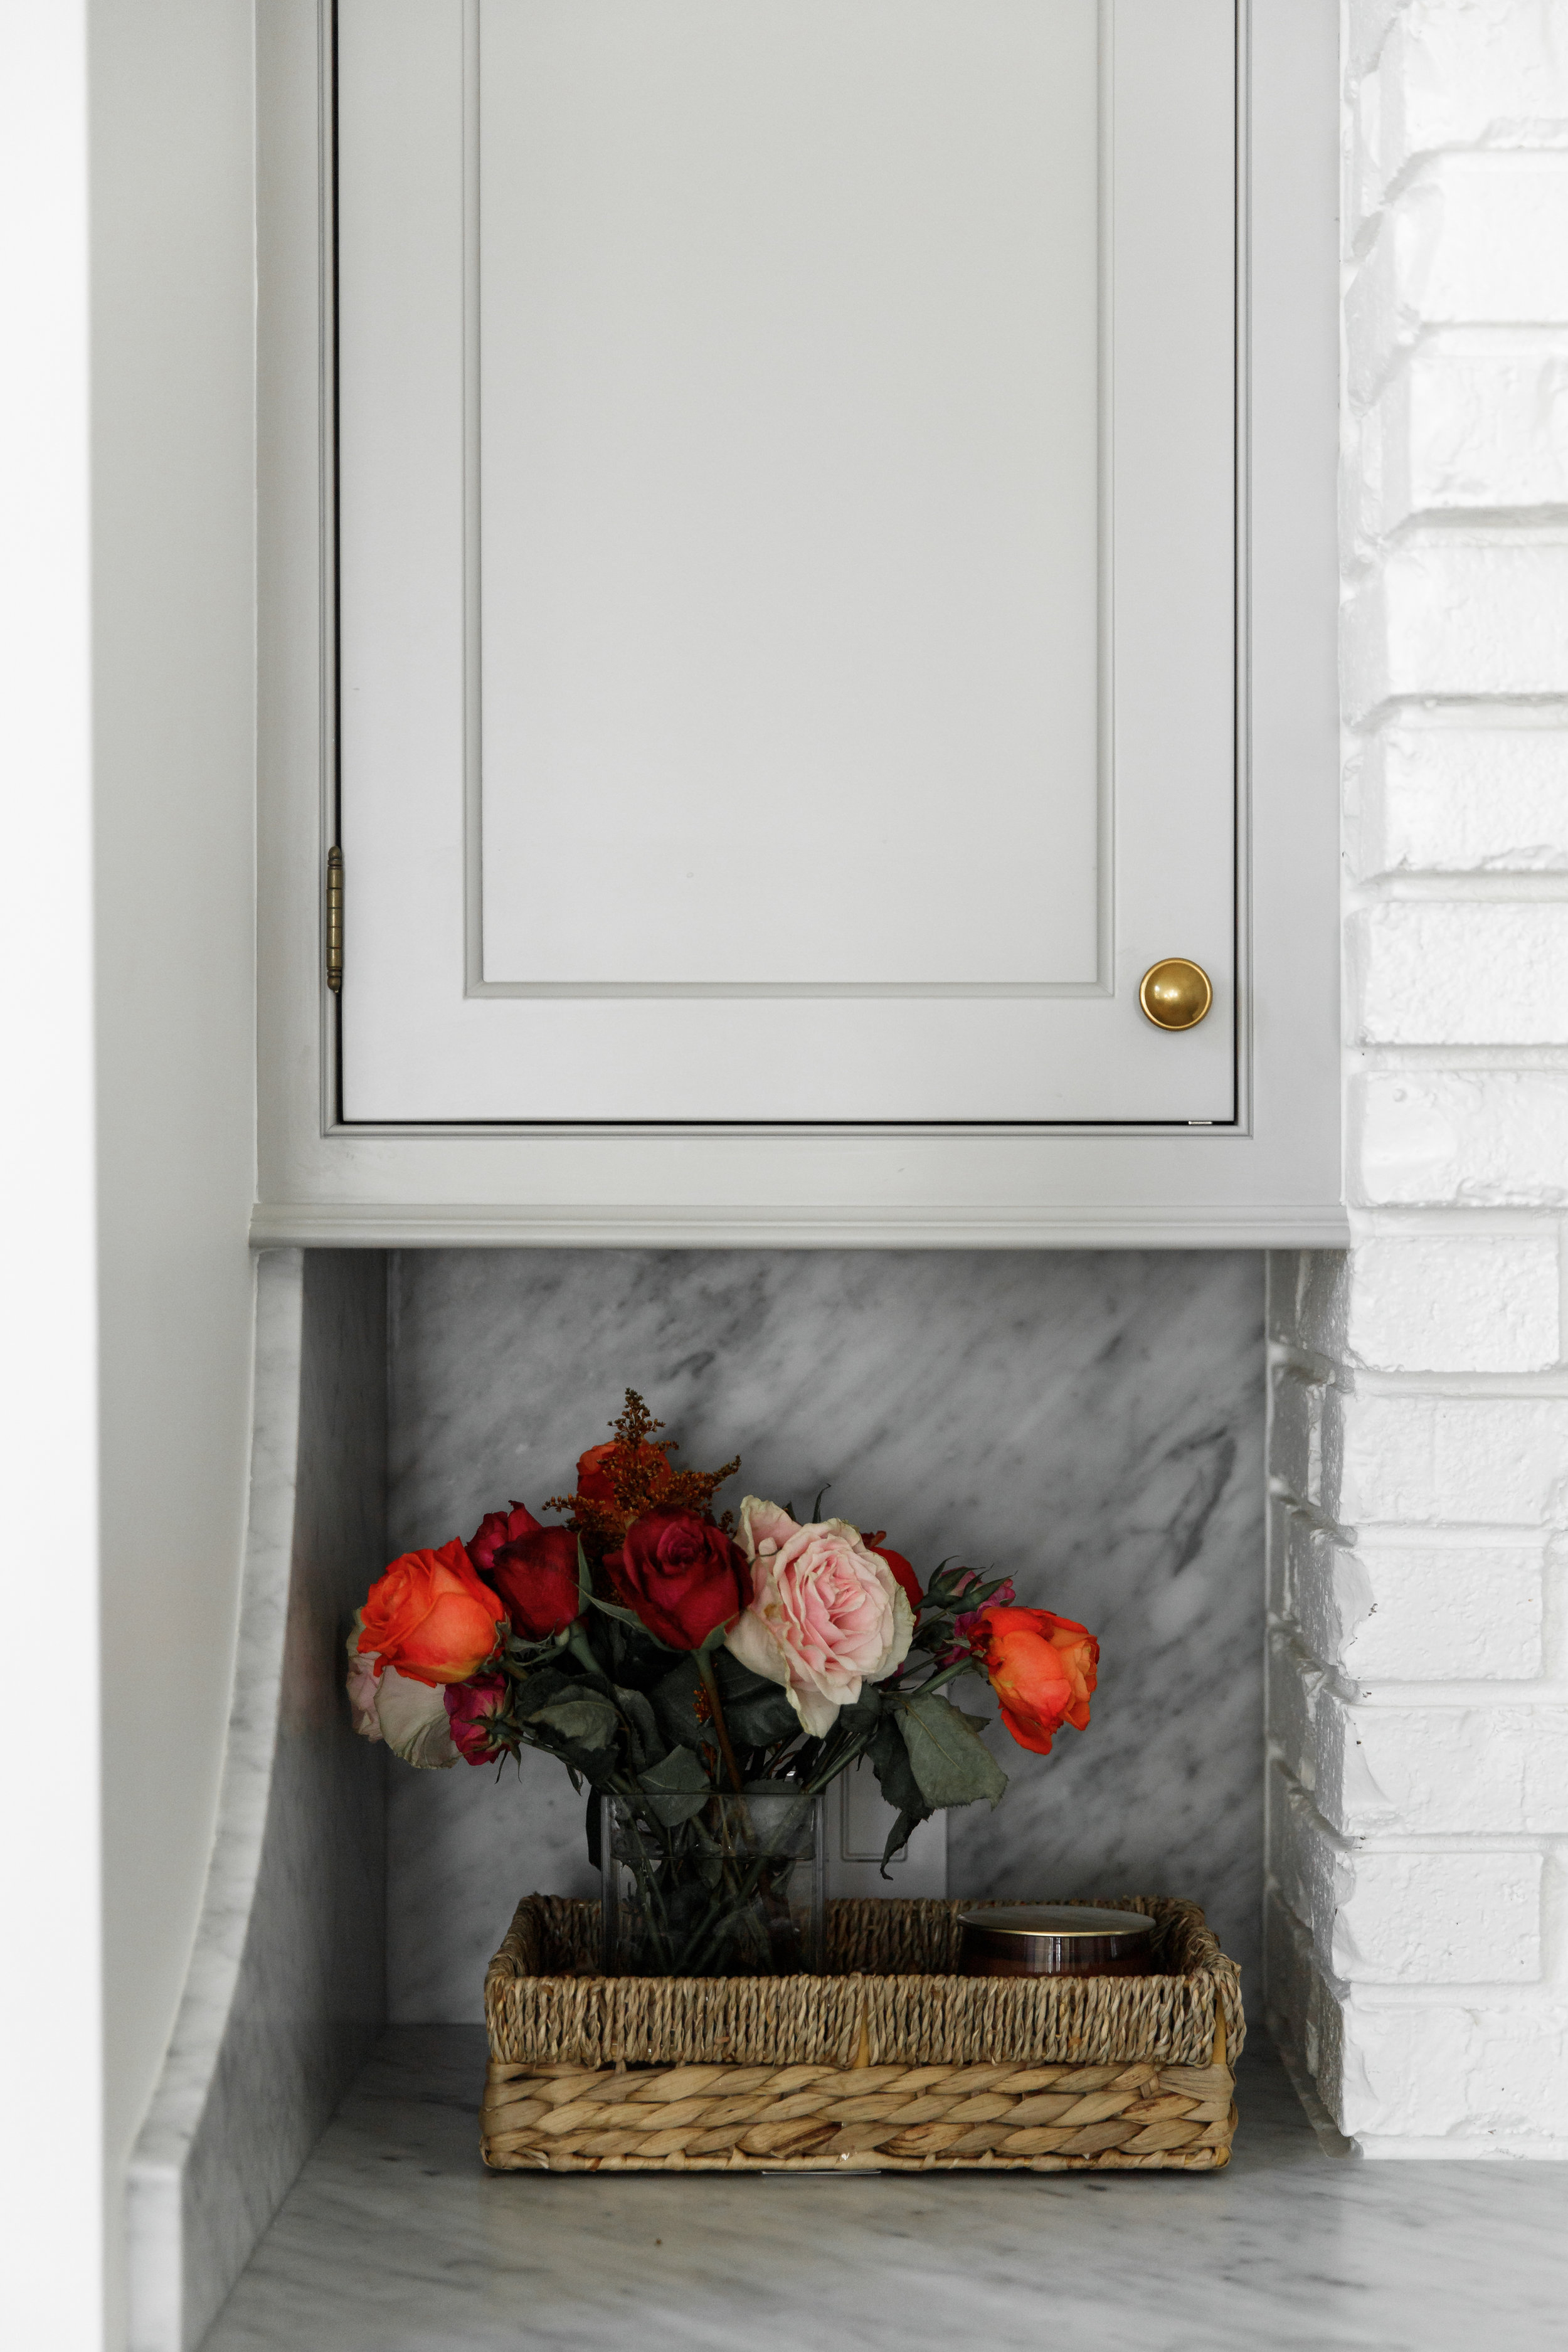 Light gray cabinets with gold hardware, flowers, rope basket and full height honed Carrara Marble countertops with backsplash.